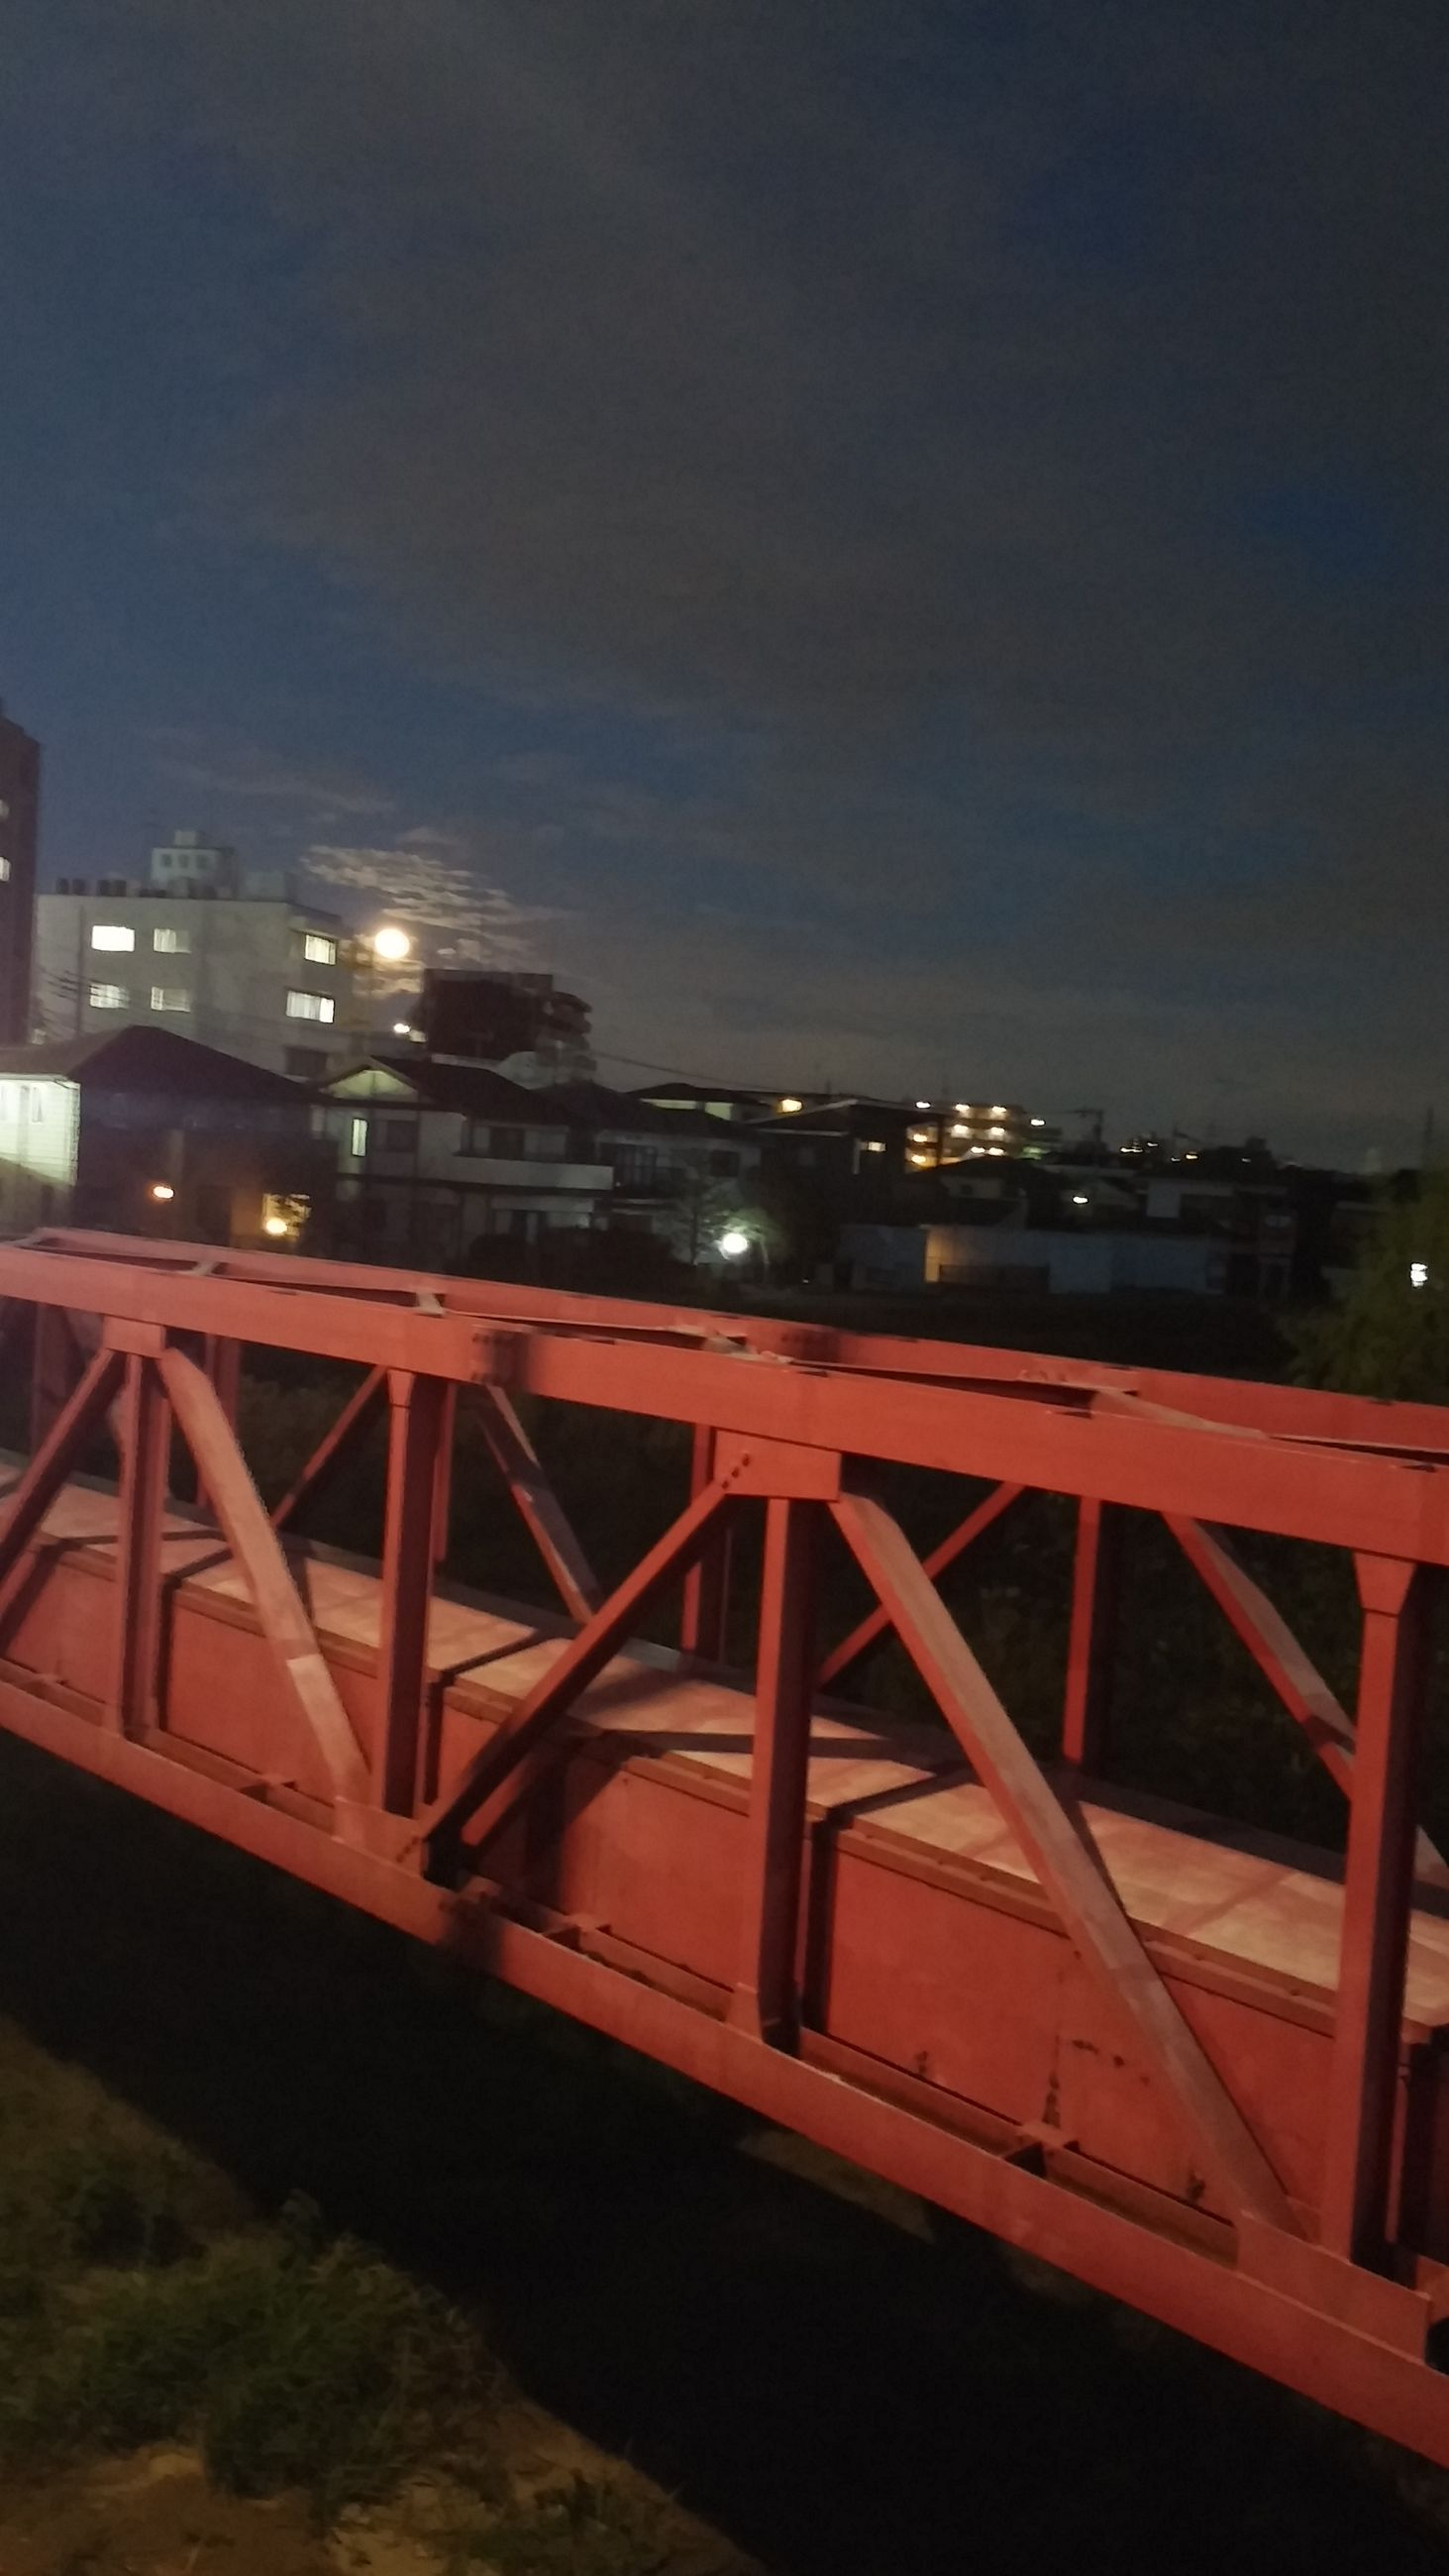 illuminated, night, built structure, low angle view, architecture, connection, engineering, industry, metal, bridge - man made structure, sky, transportation, no people, outdoors, red, clear sky, development, light - natural phenomenon, lighting equipment, dusk